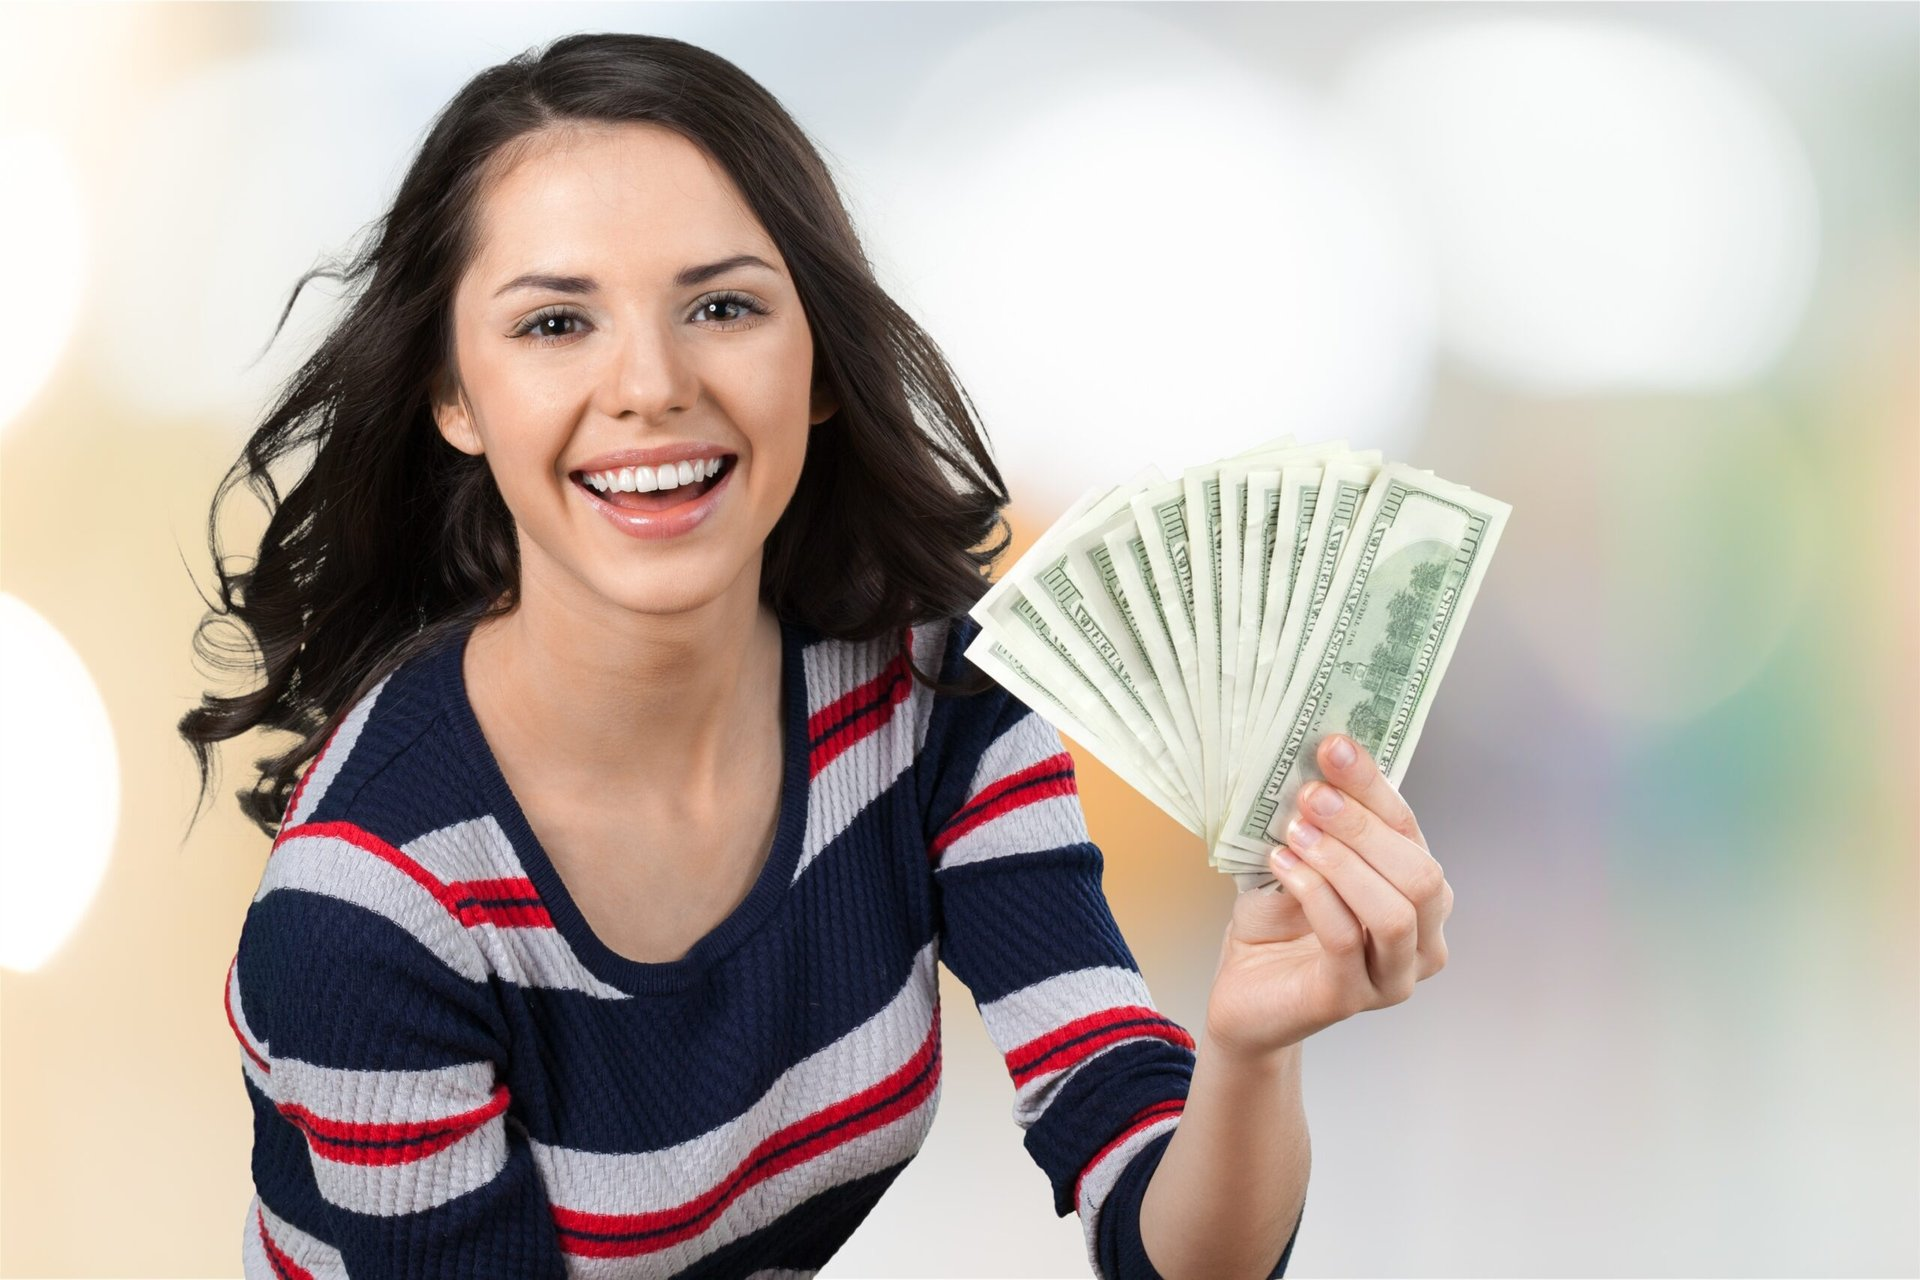 Young woman with money